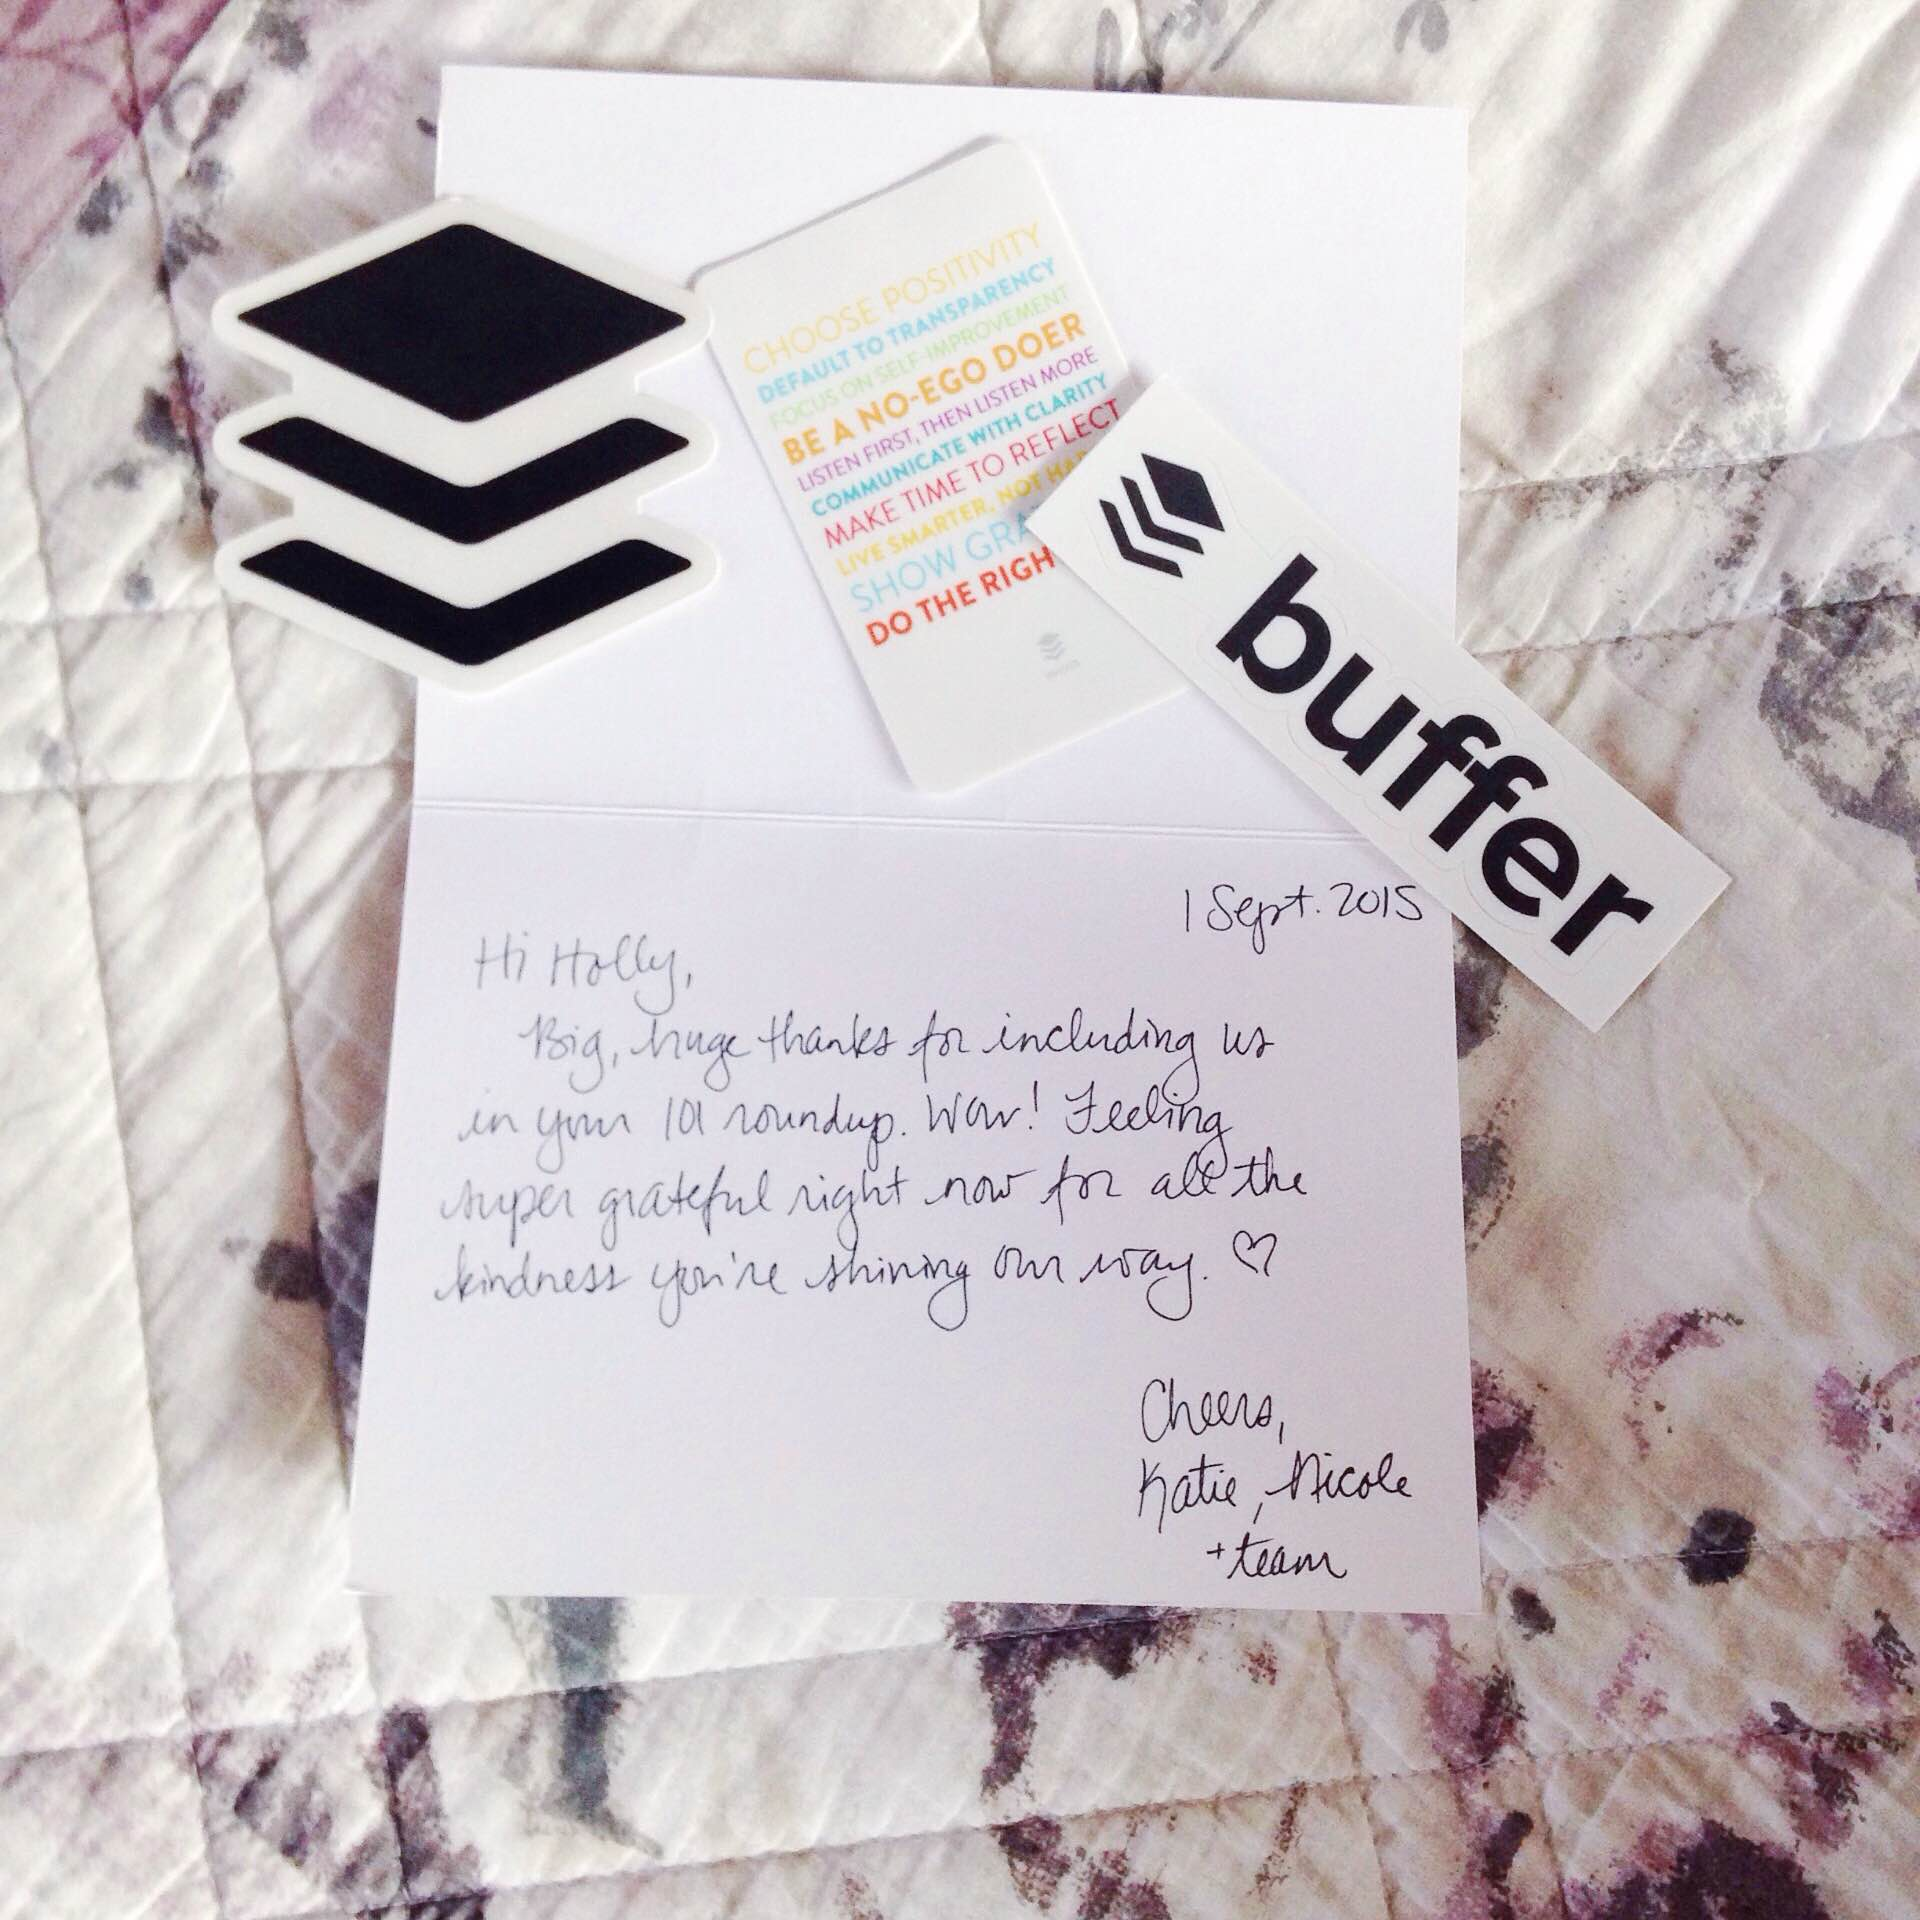 A gift from the Buffer team